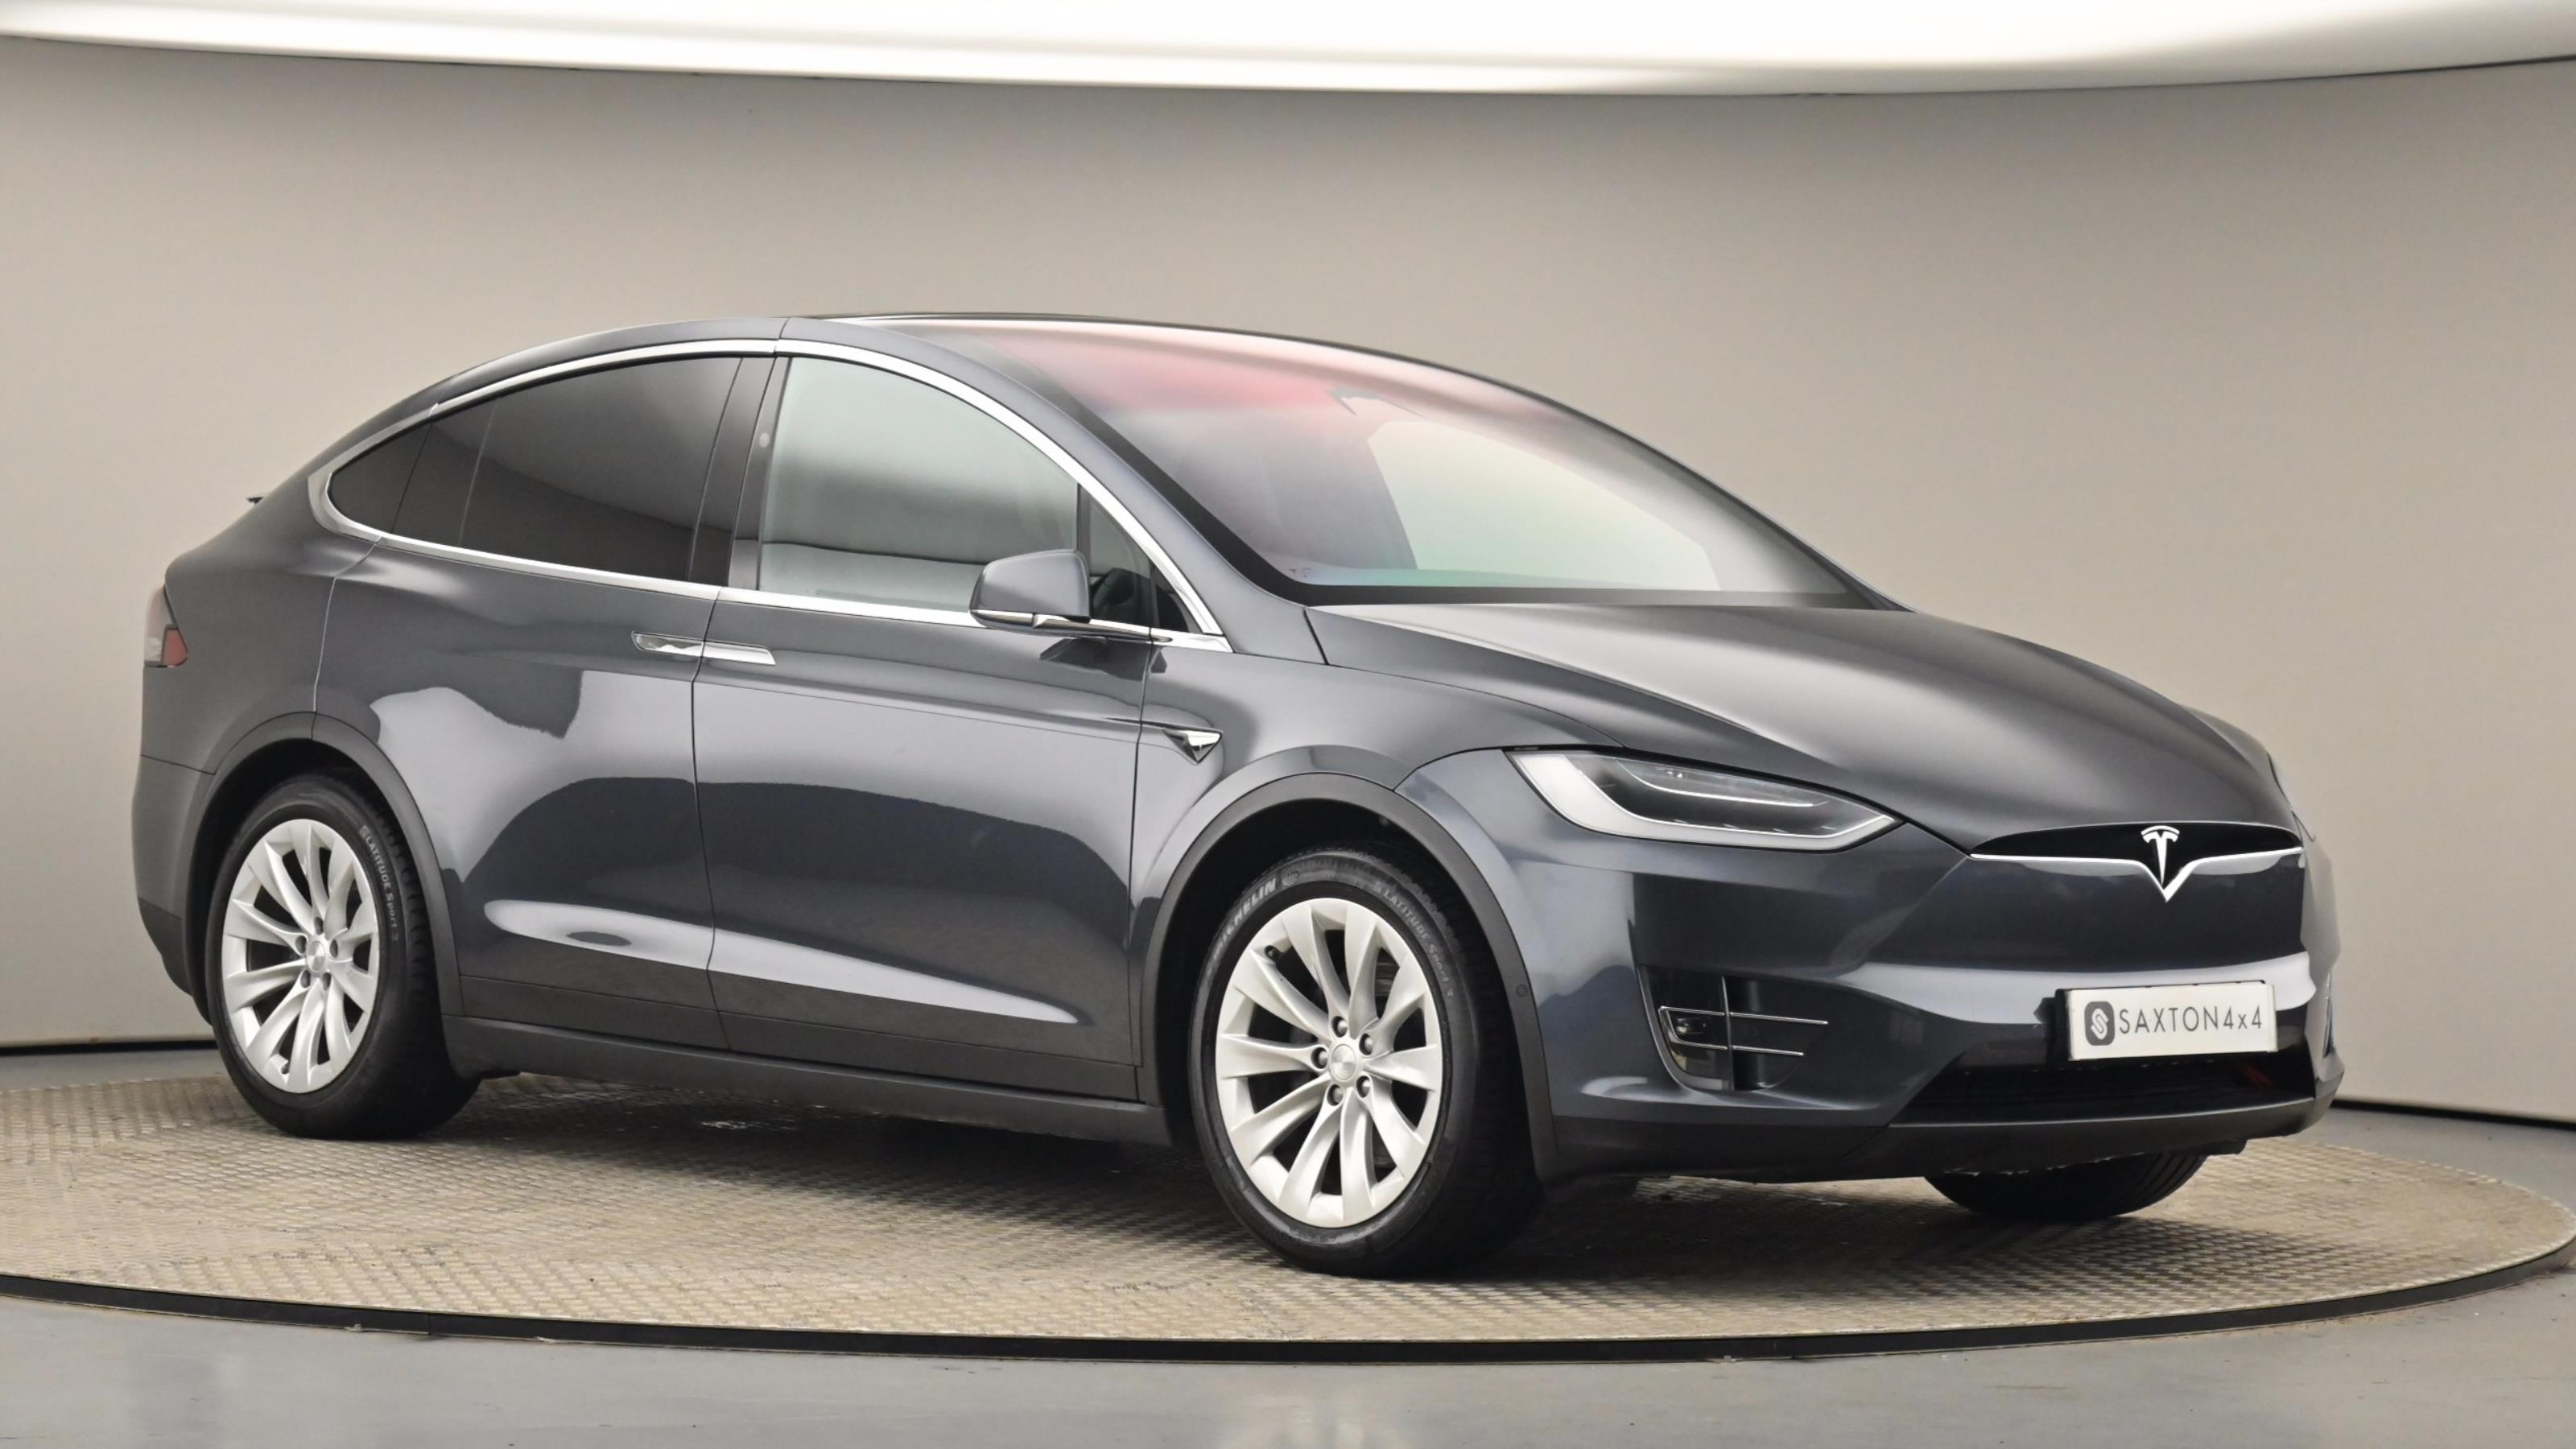 Used 2018 Tesla MODEL X 245kW 75kWh Dual Motor 5dr Auto GREY at Saxton4x4